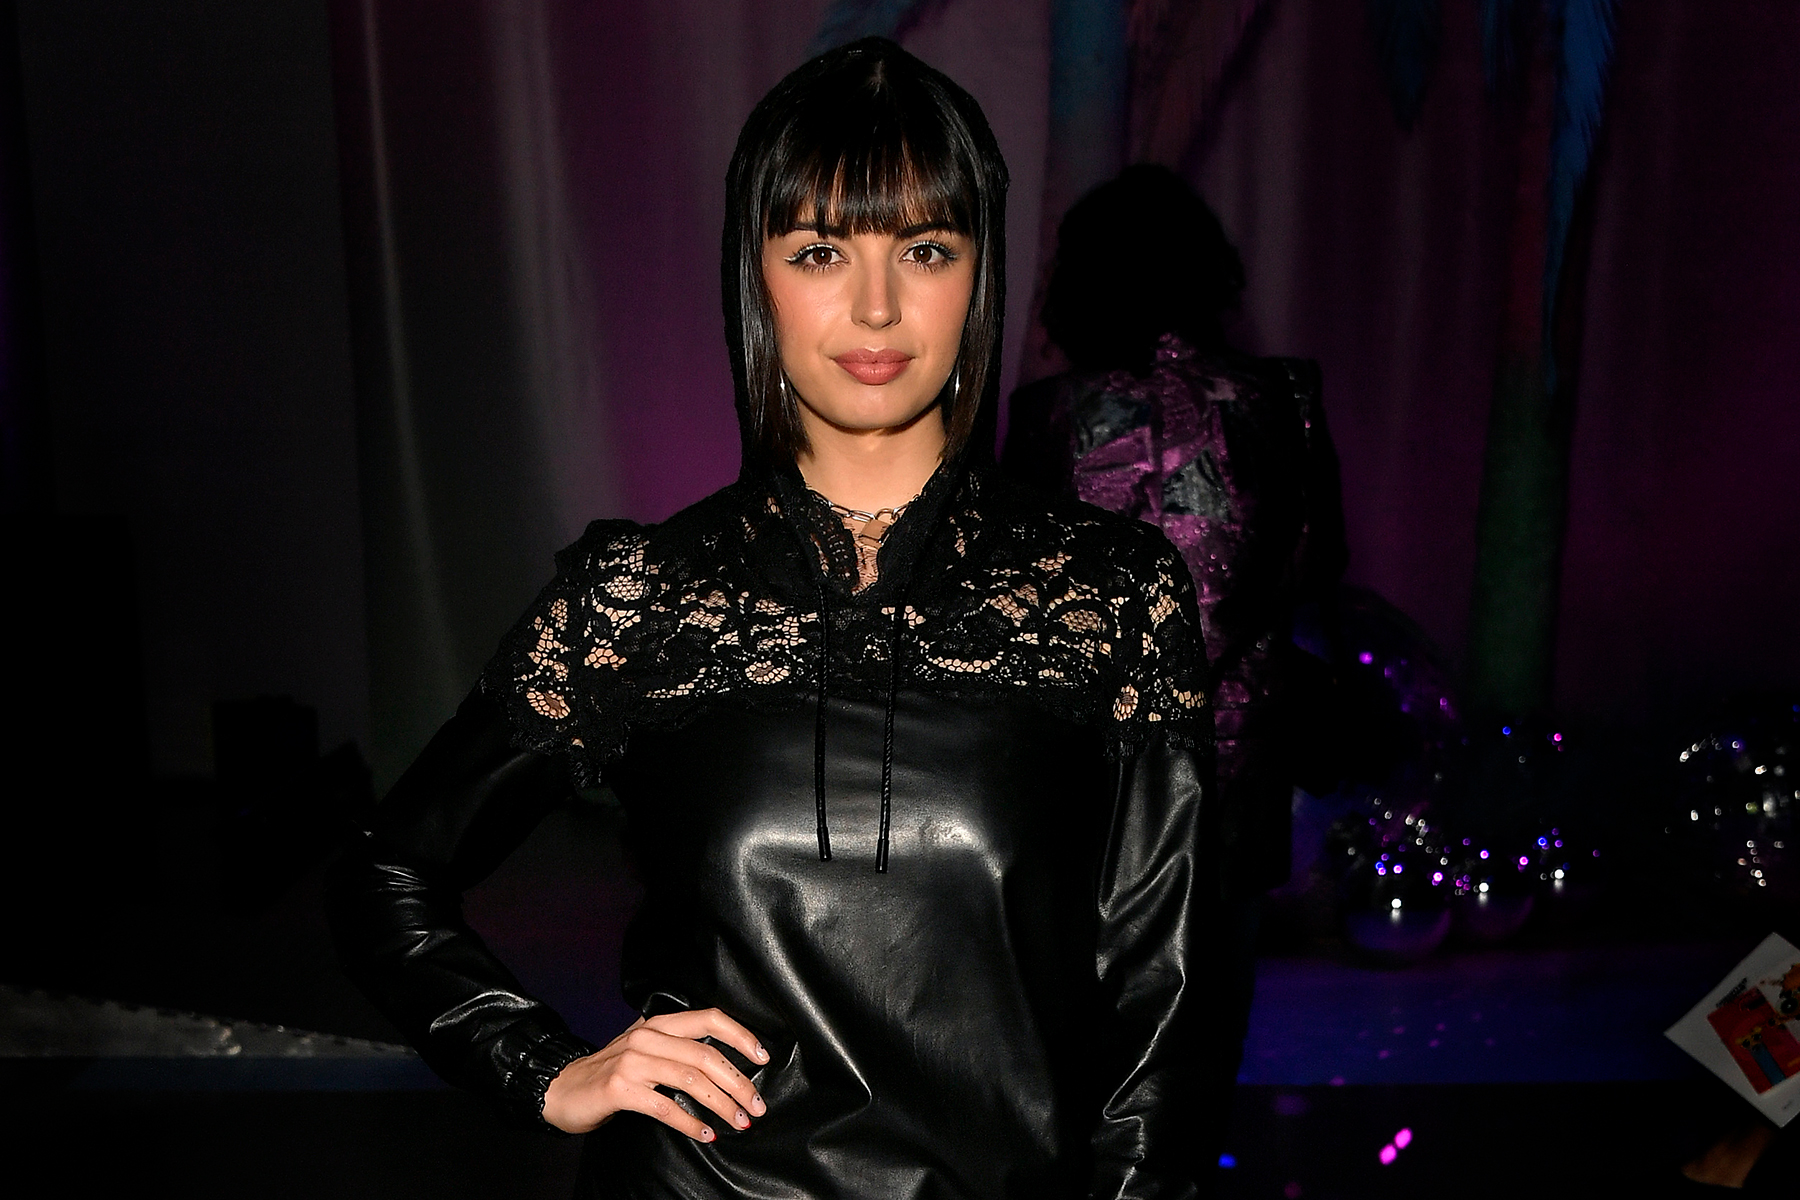 Rebecca Black Celebrates 10 Years of 'Friday' With Remix Featuring Big Freedia, 3OH!3, Dorian Electra - Rolling Stone